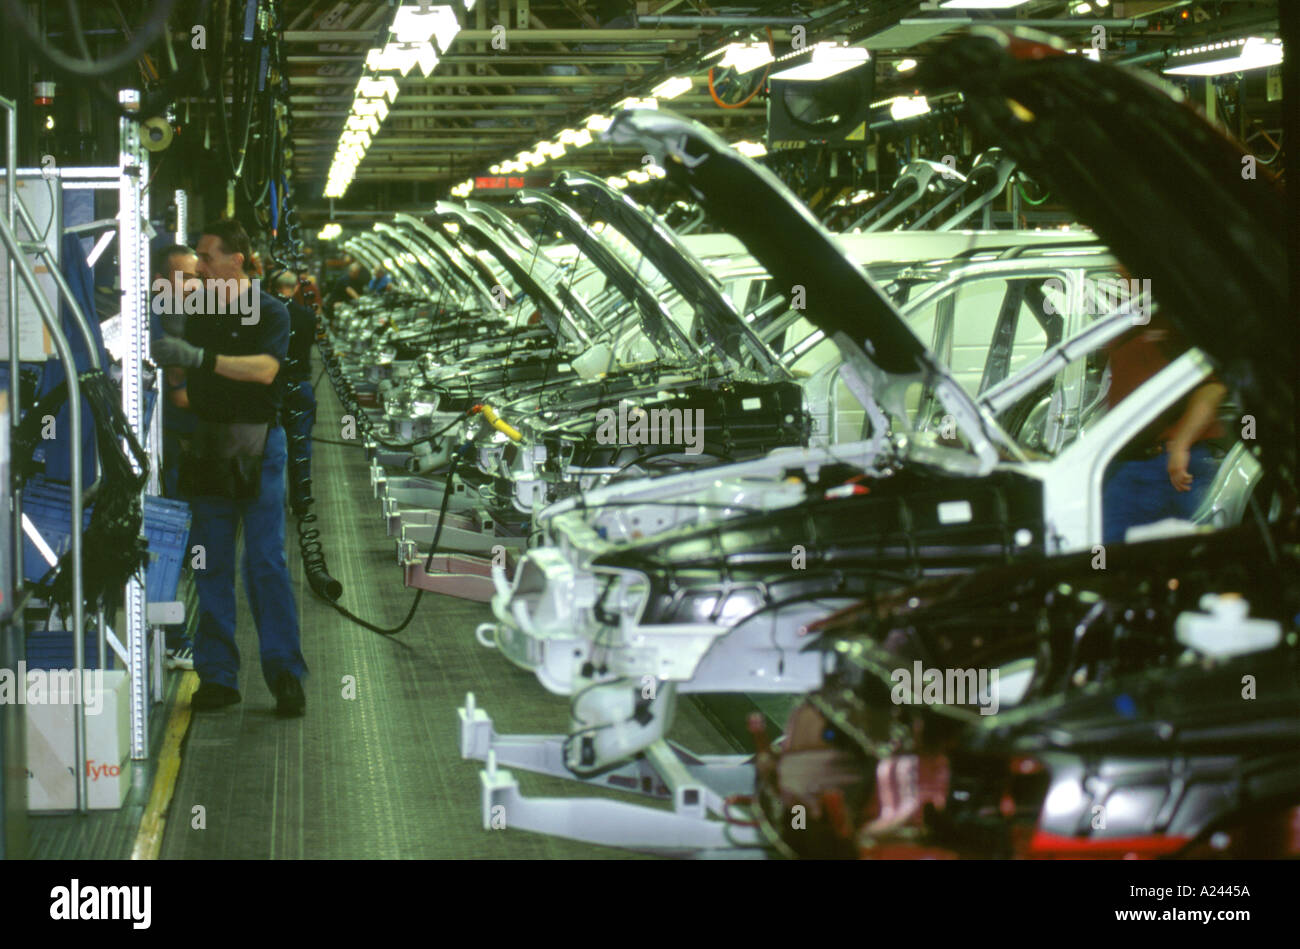 Last day of Ford Escort production Halewood factory July 2000 - Stock Image